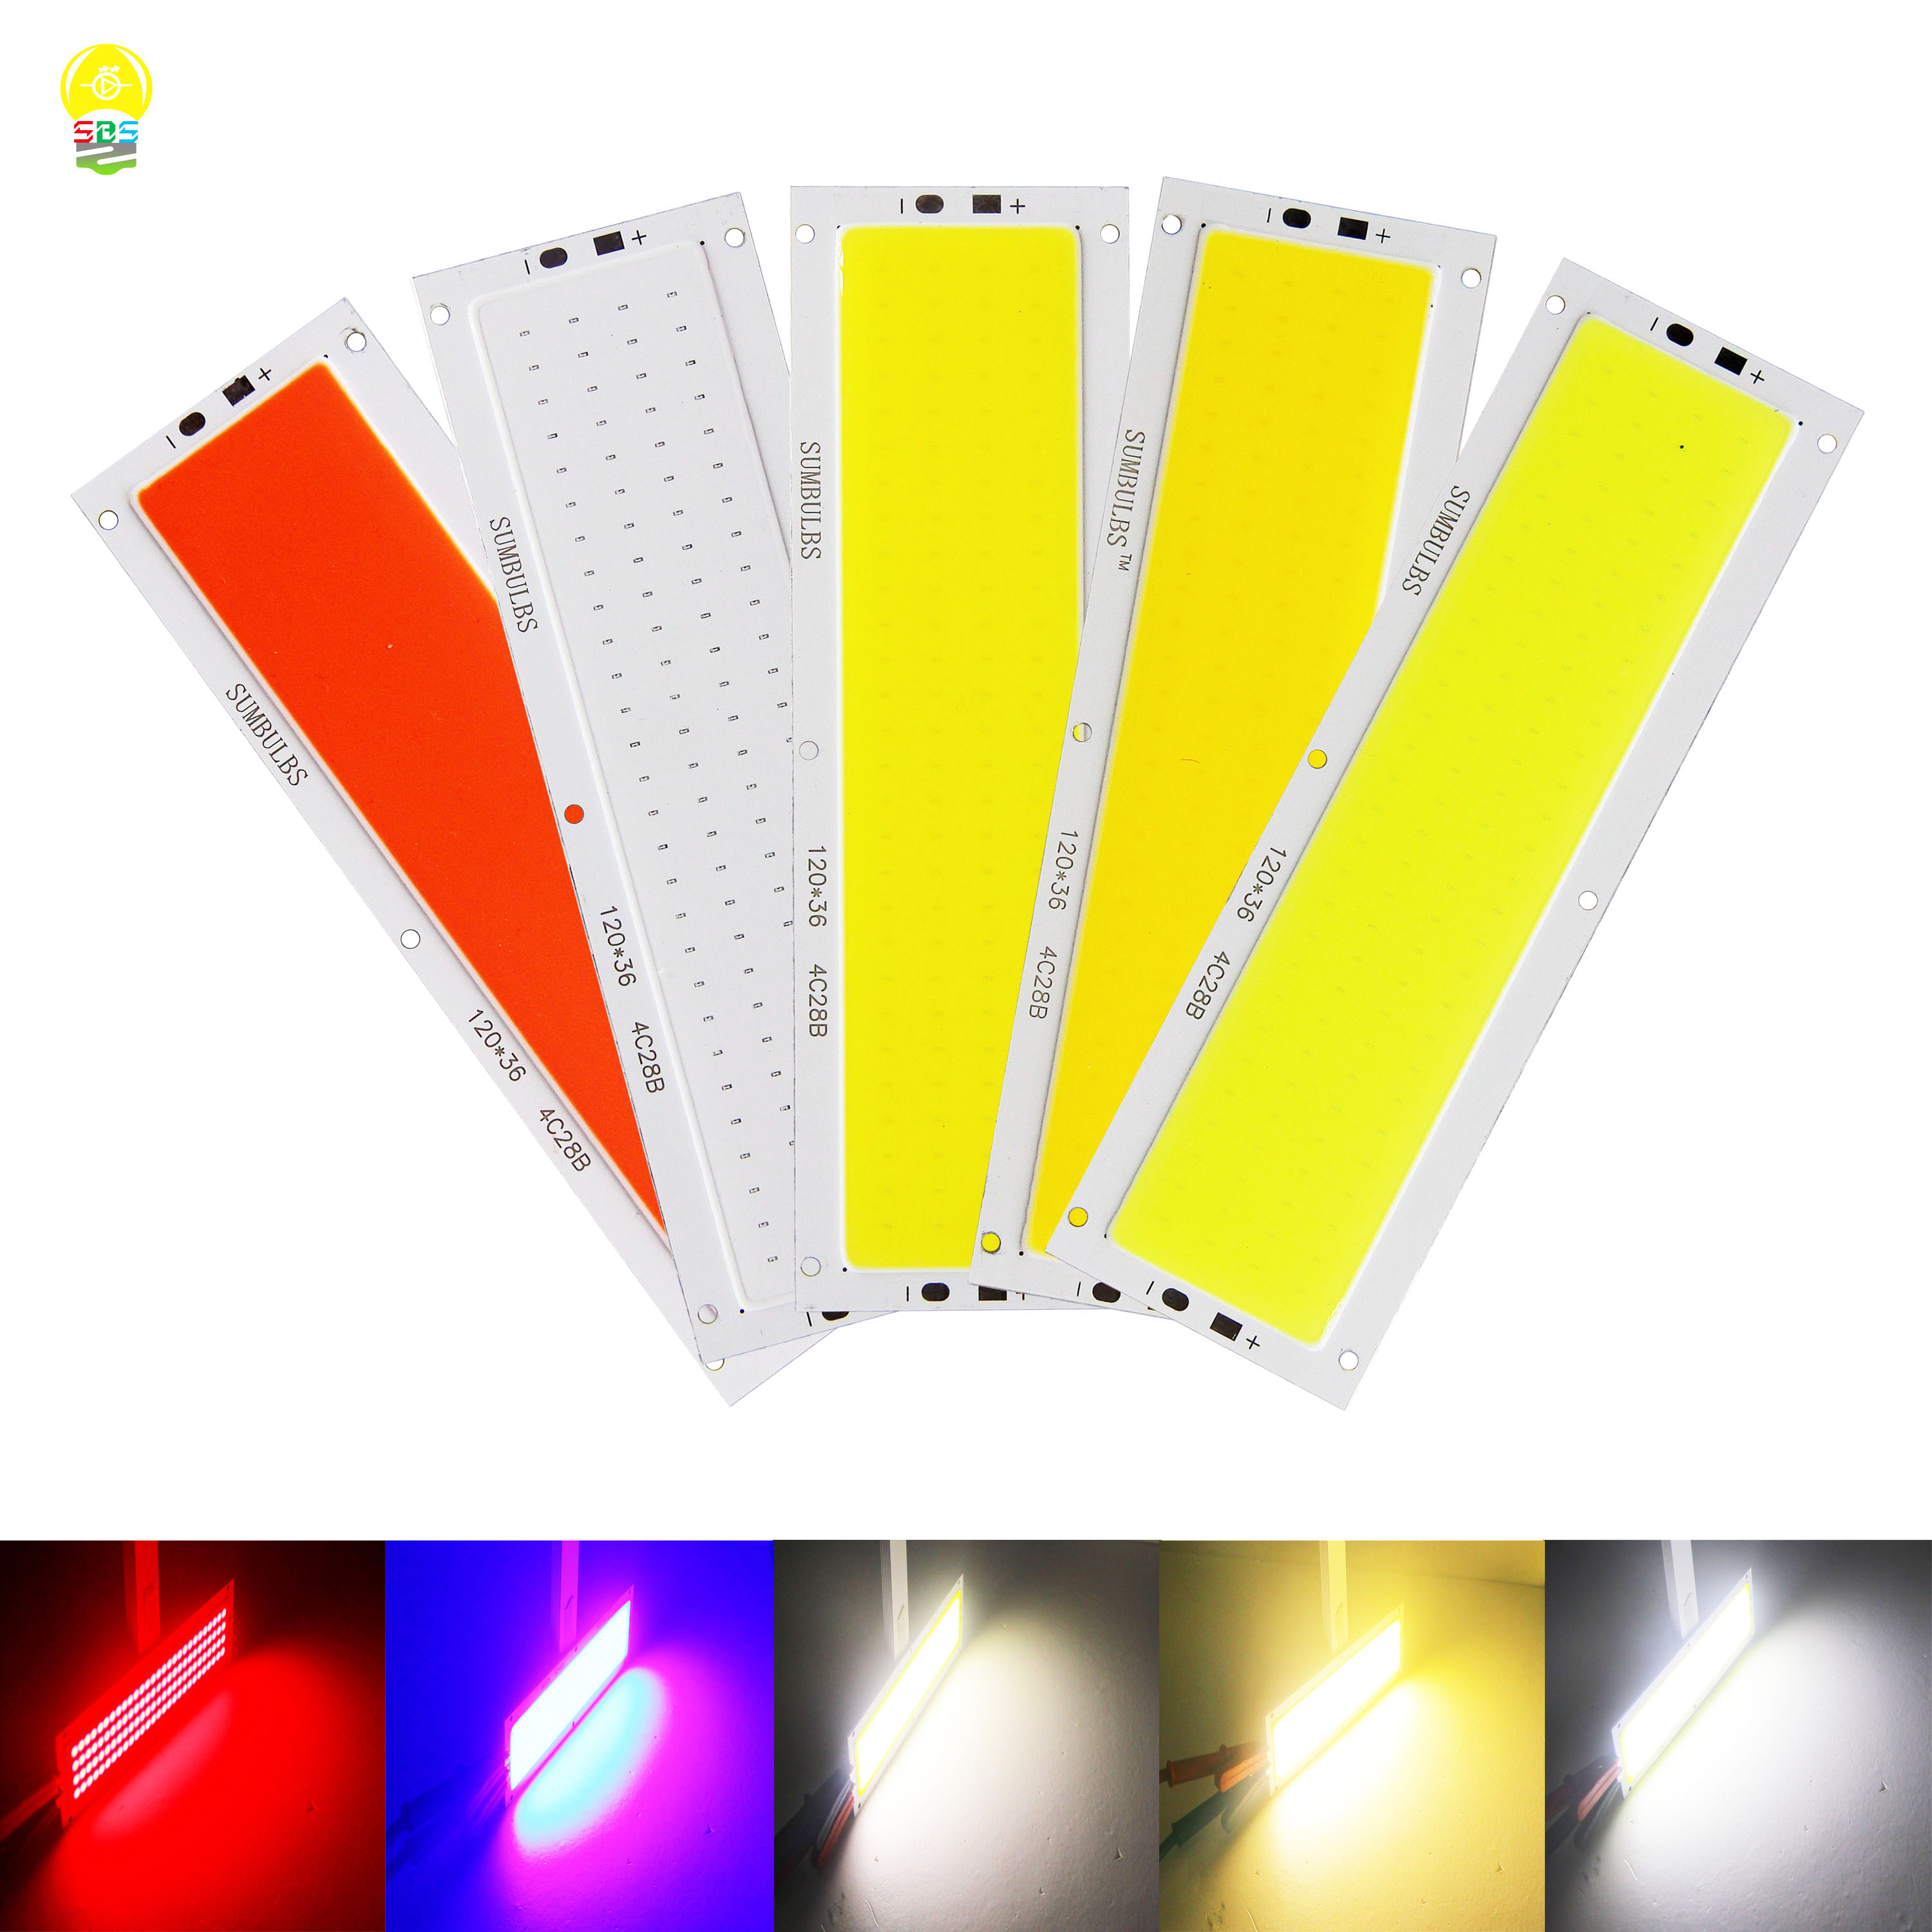 120*36mm Ultra Bright 1300LM 12W COB LED Light Strip 12V DC For DIY Car Lights Work Lamps Home Bulbs Bar COB Chip